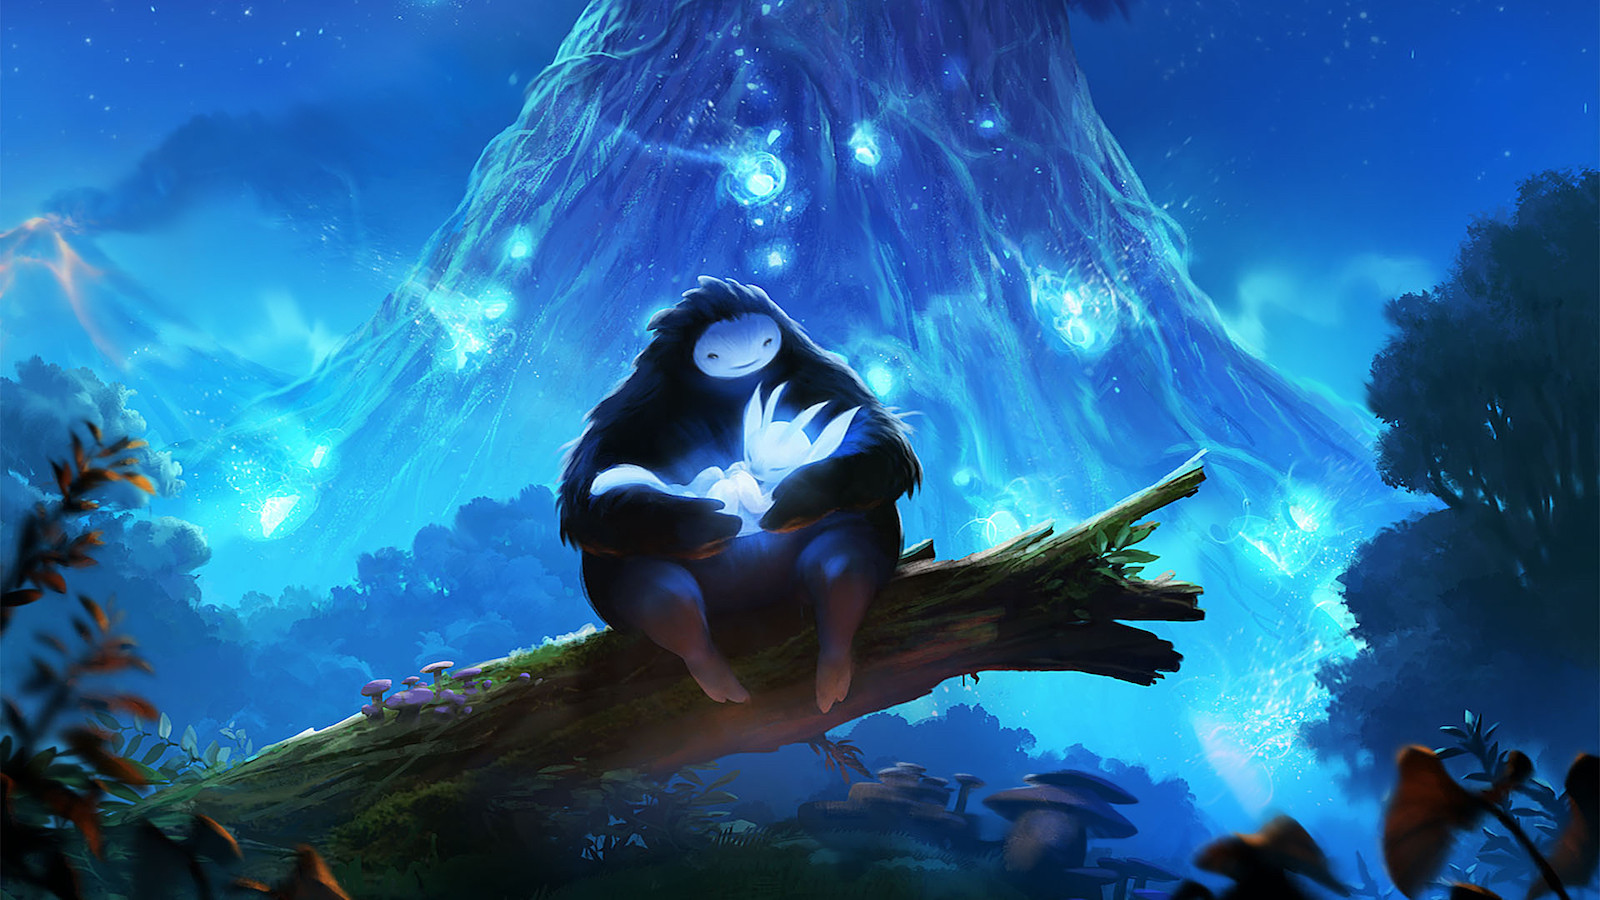 Ori and the Blind Forest playstation, xbox, игры, компьютерные игры